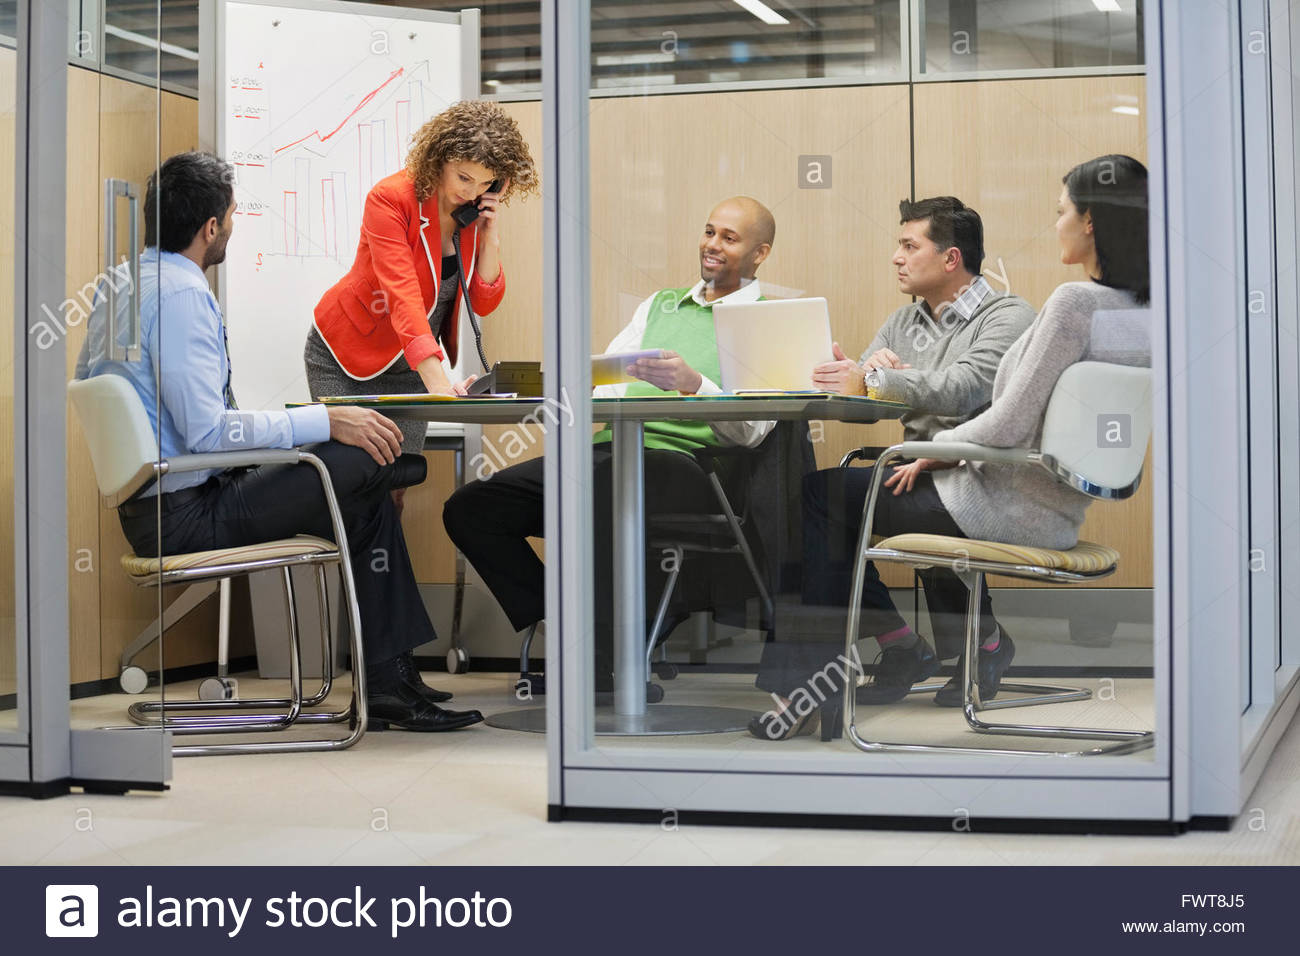 Businesswoman using telephone with colleagues in board room - Stock Image